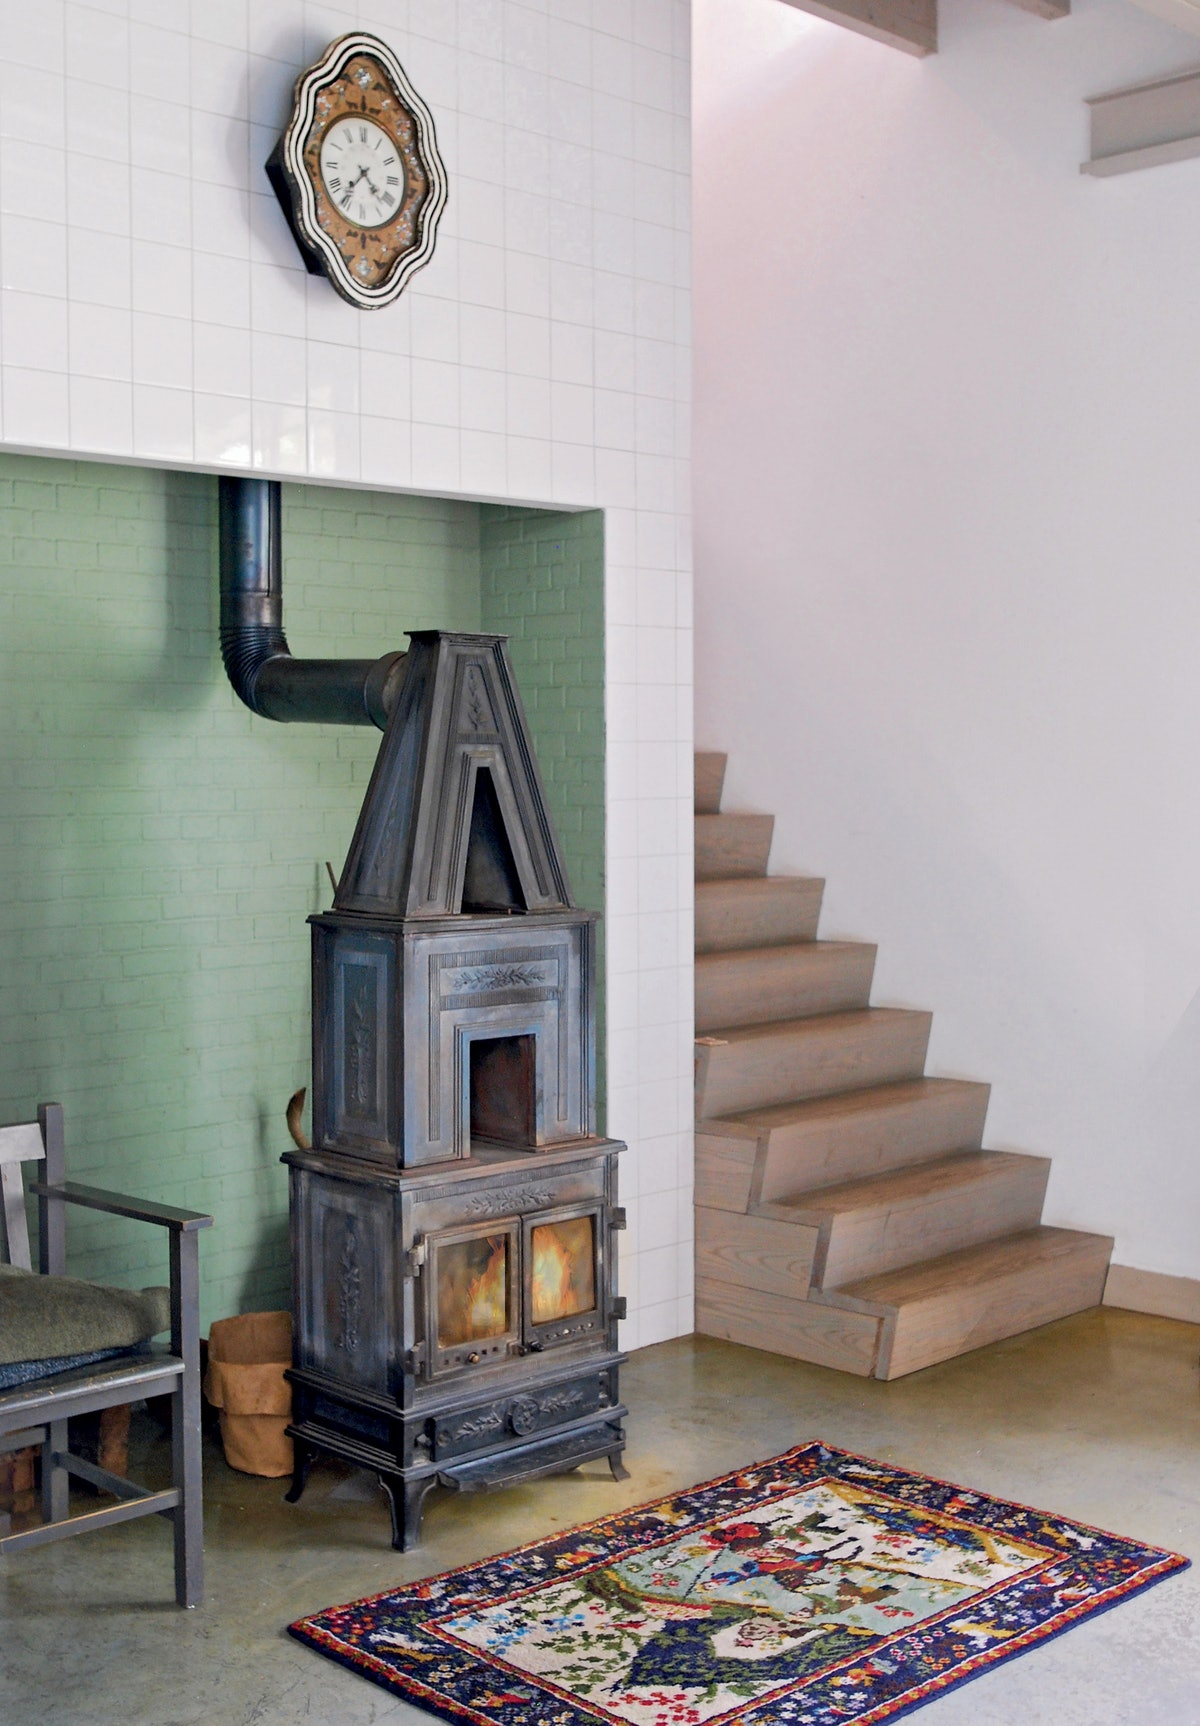 a wood-burning stove at the bottom of a modern staircase